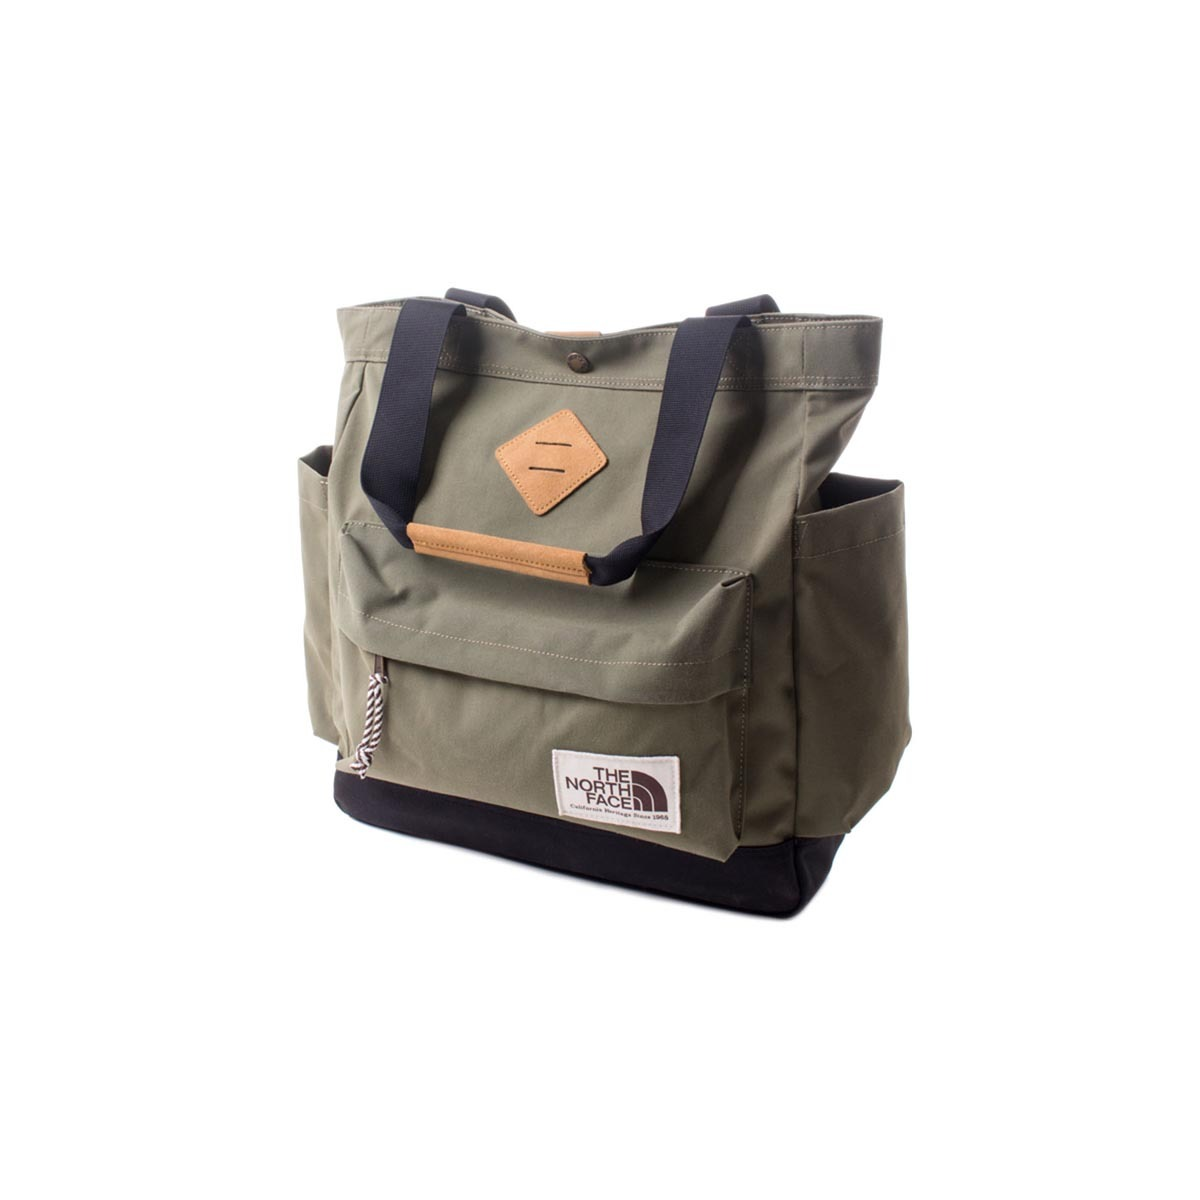 38a481b7a The North Face Four Point Tote - $69.00 - Thrill On